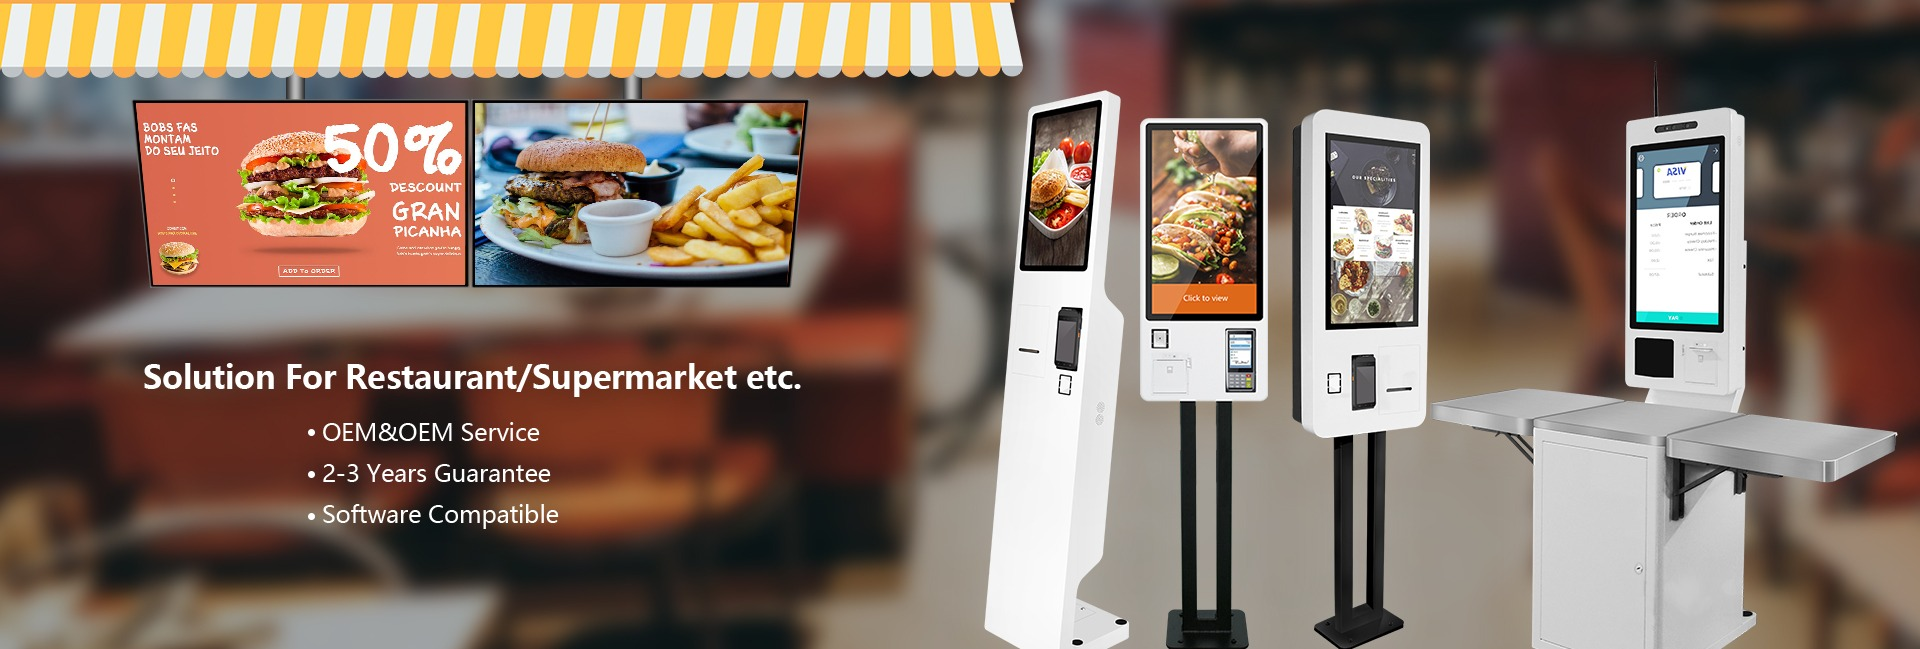 restaurant table ordering system Digital Screens and self order kiosk